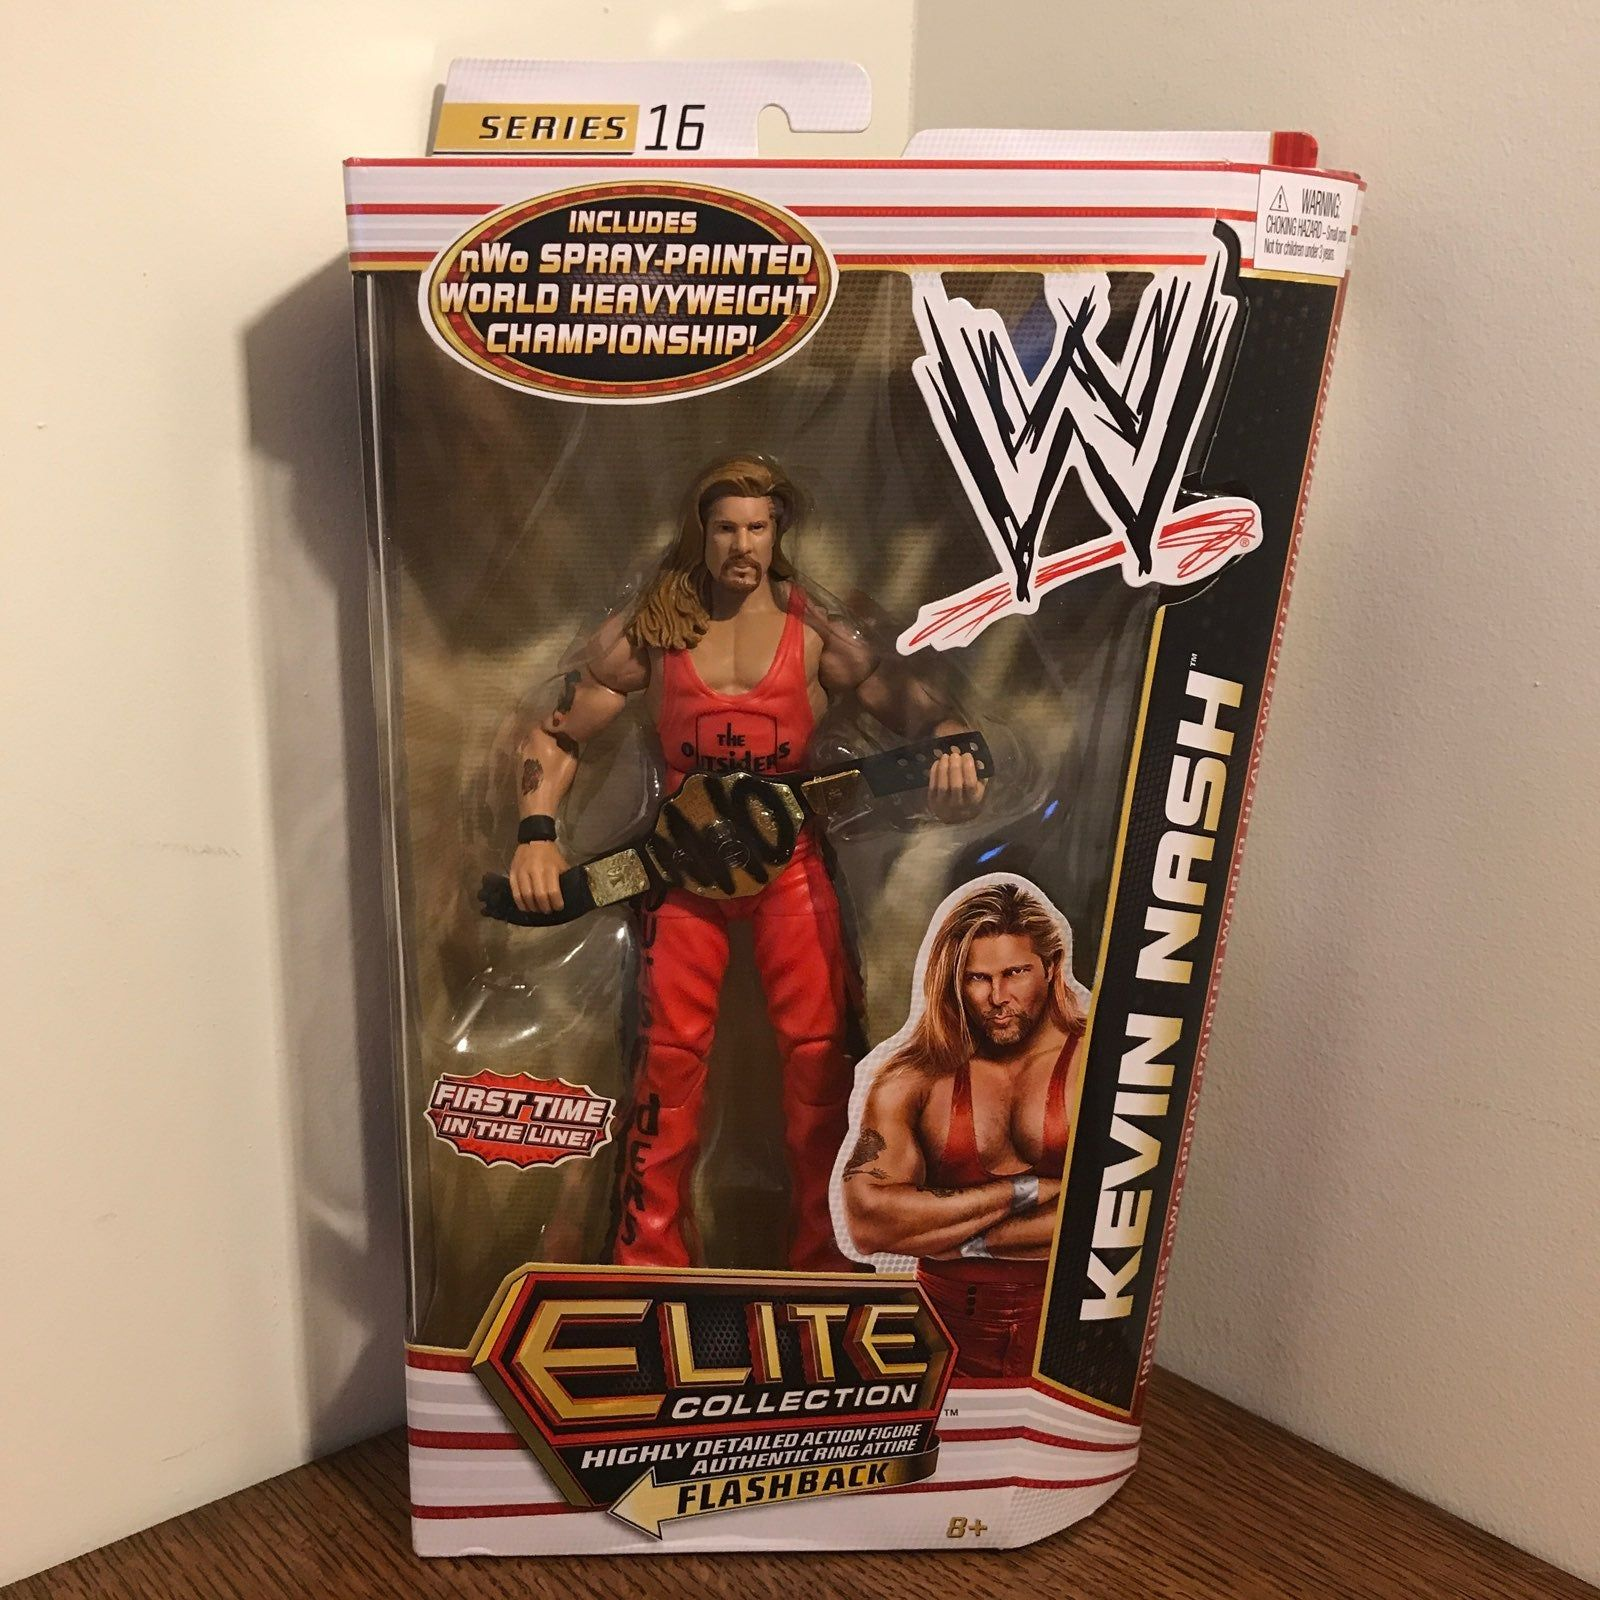 WWE Mini Wrestling 2 Ring and Liberty Playset Imports Action Figures Accessories